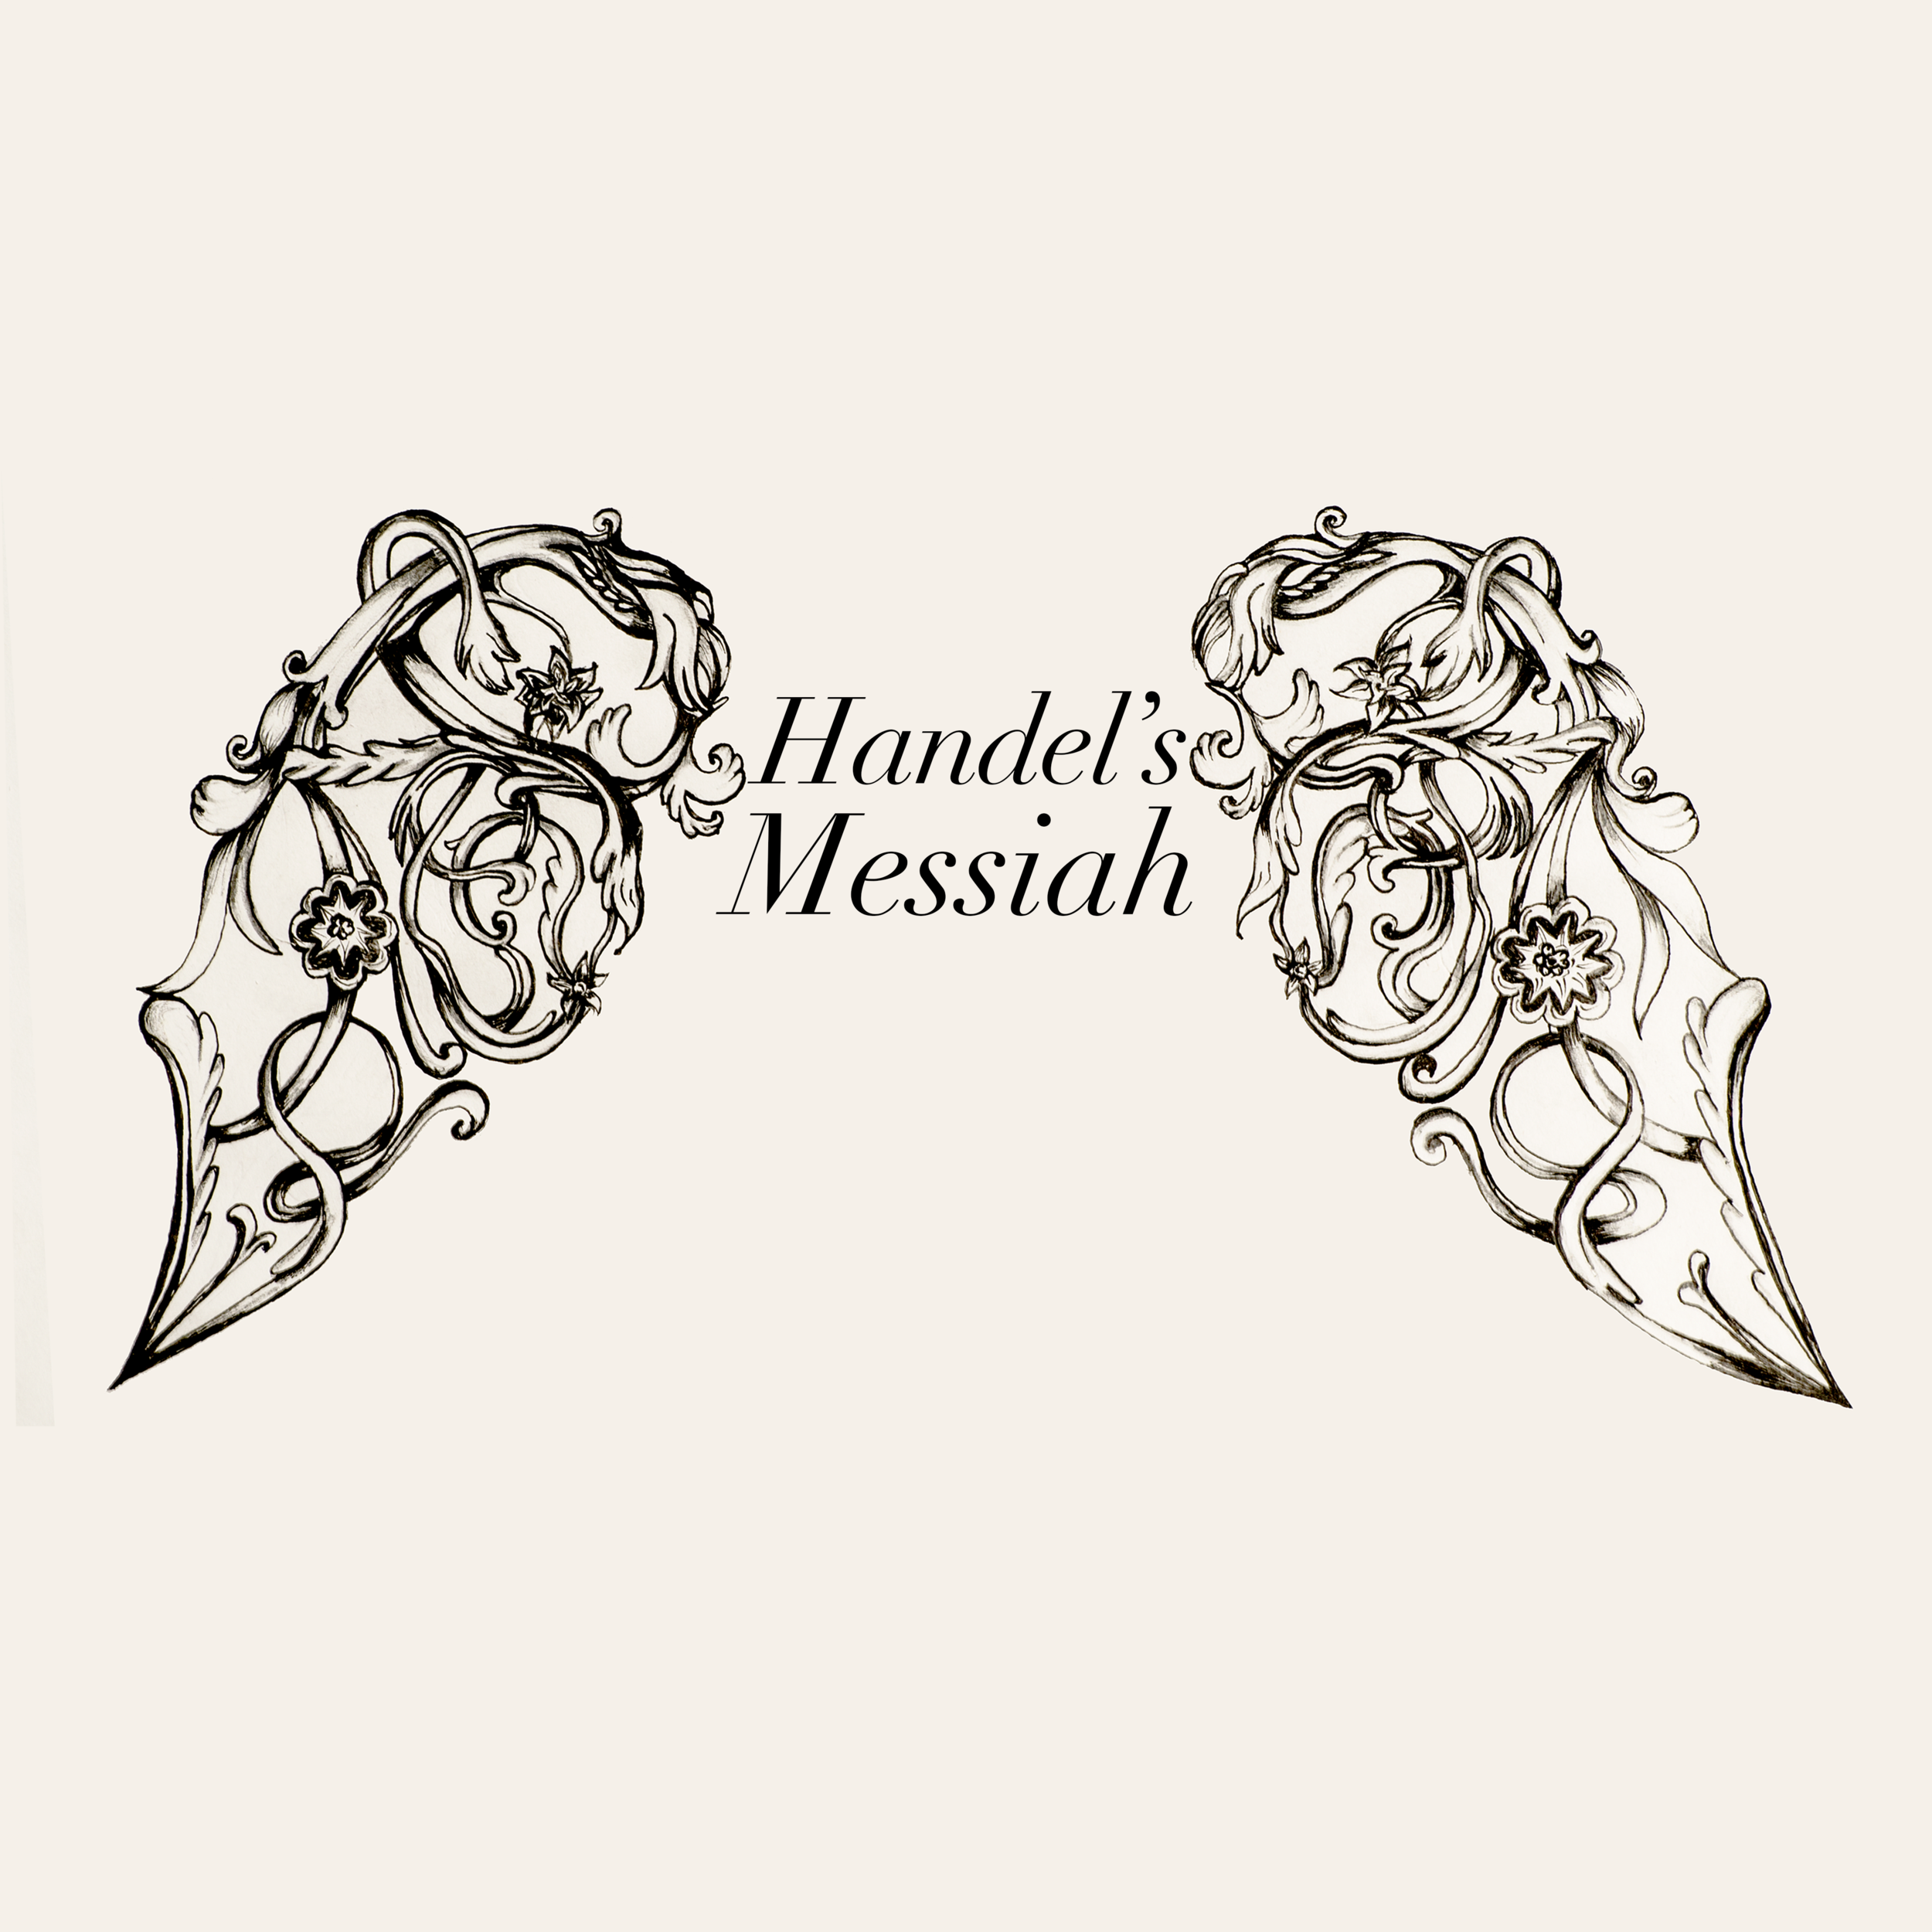 Handel: Messiah    7:30 PM Tuesday, December 10, 2019    7:30 PM Thursday, December 12, 2019